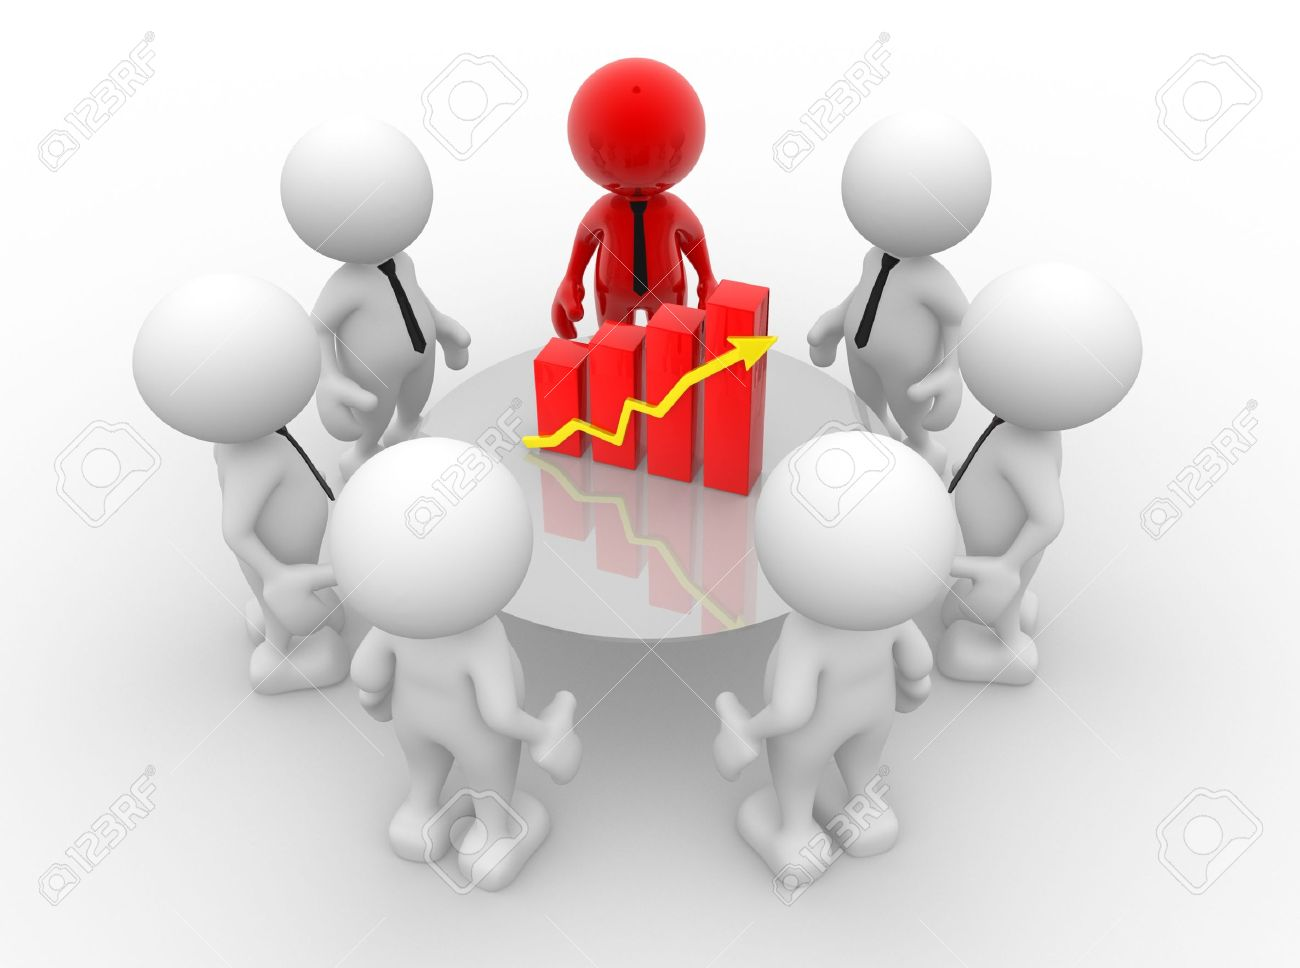 hight resolution of 3d people men person with financial chart diagram business success concept stock